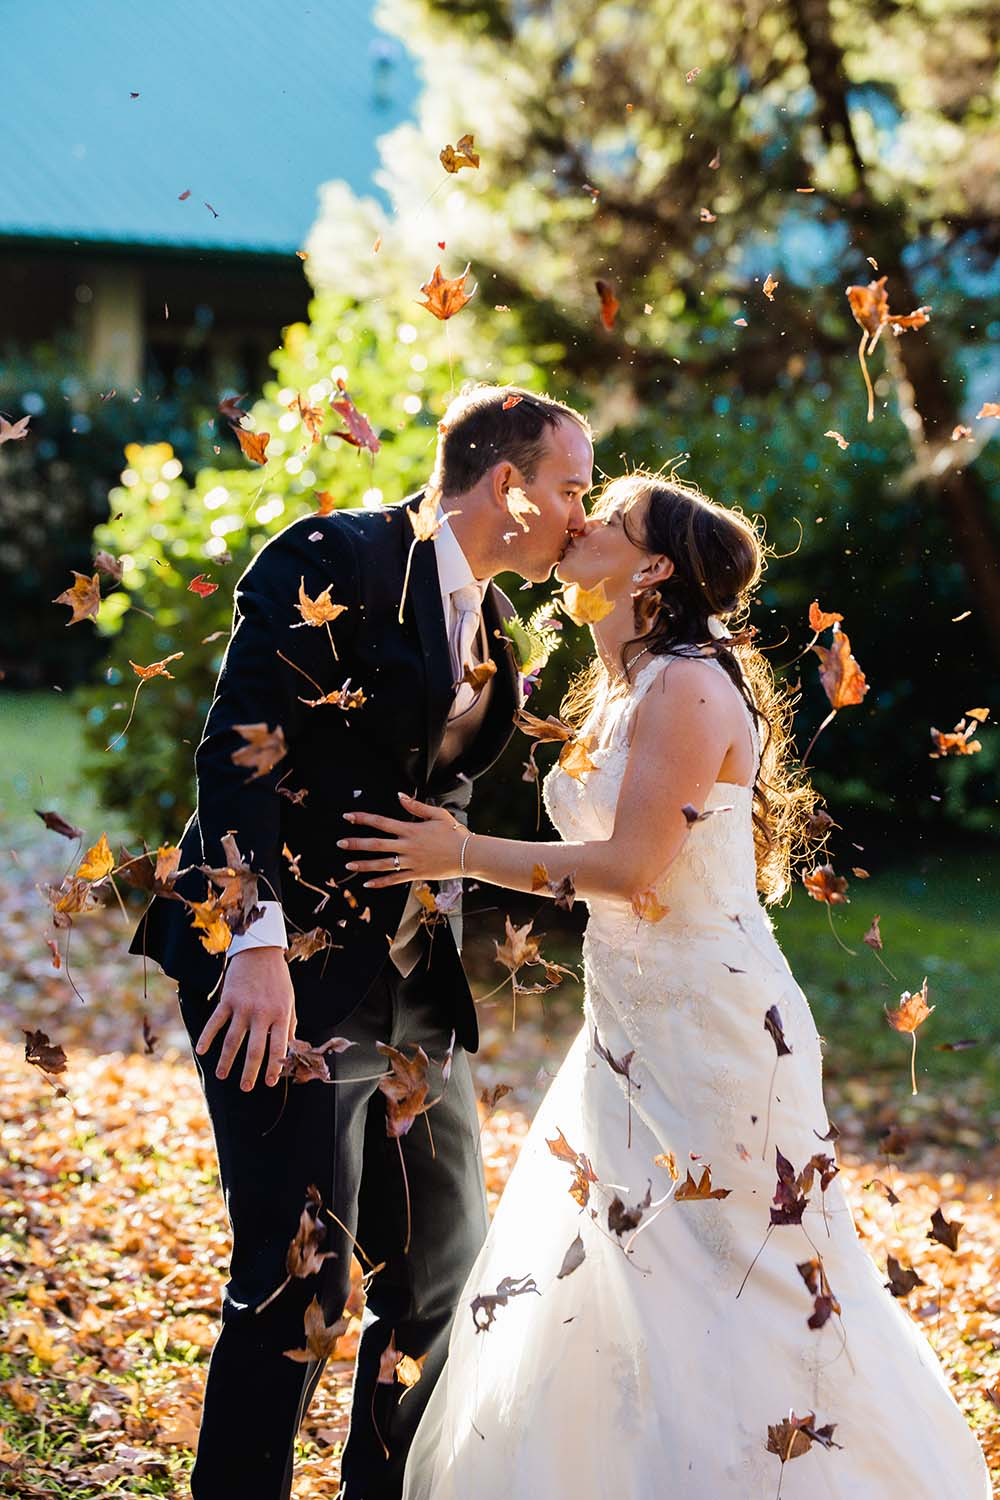 Wedding Photography Couple Kissing under falling leaves